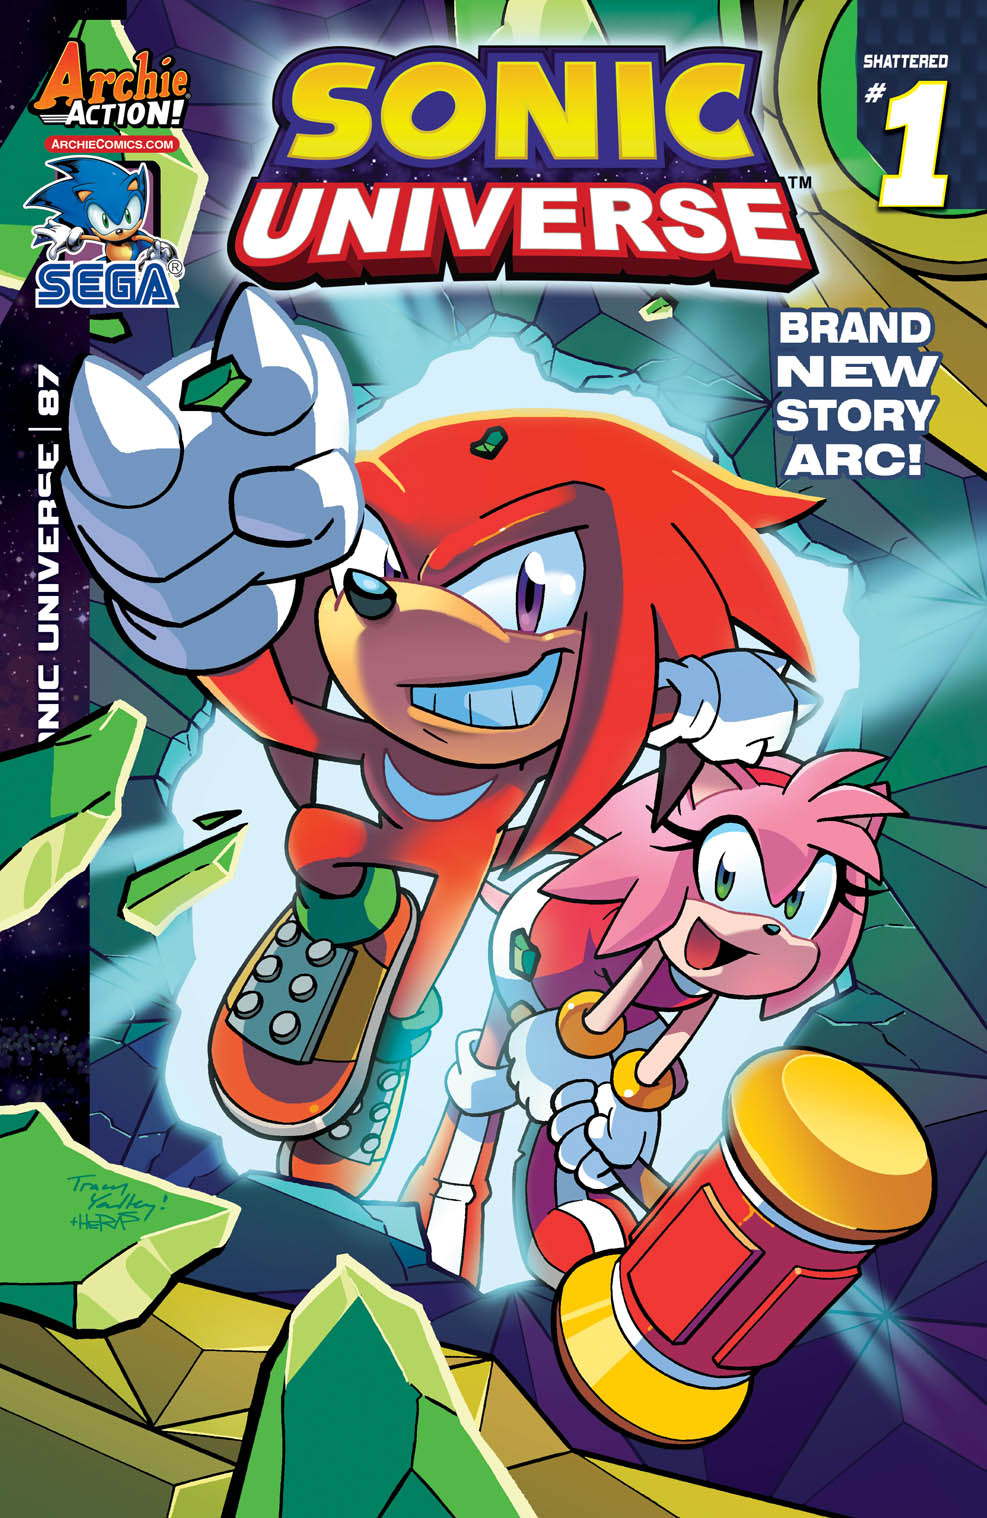 Archie Comics  Sonic The Hedgehog #284  Cover A  Variant